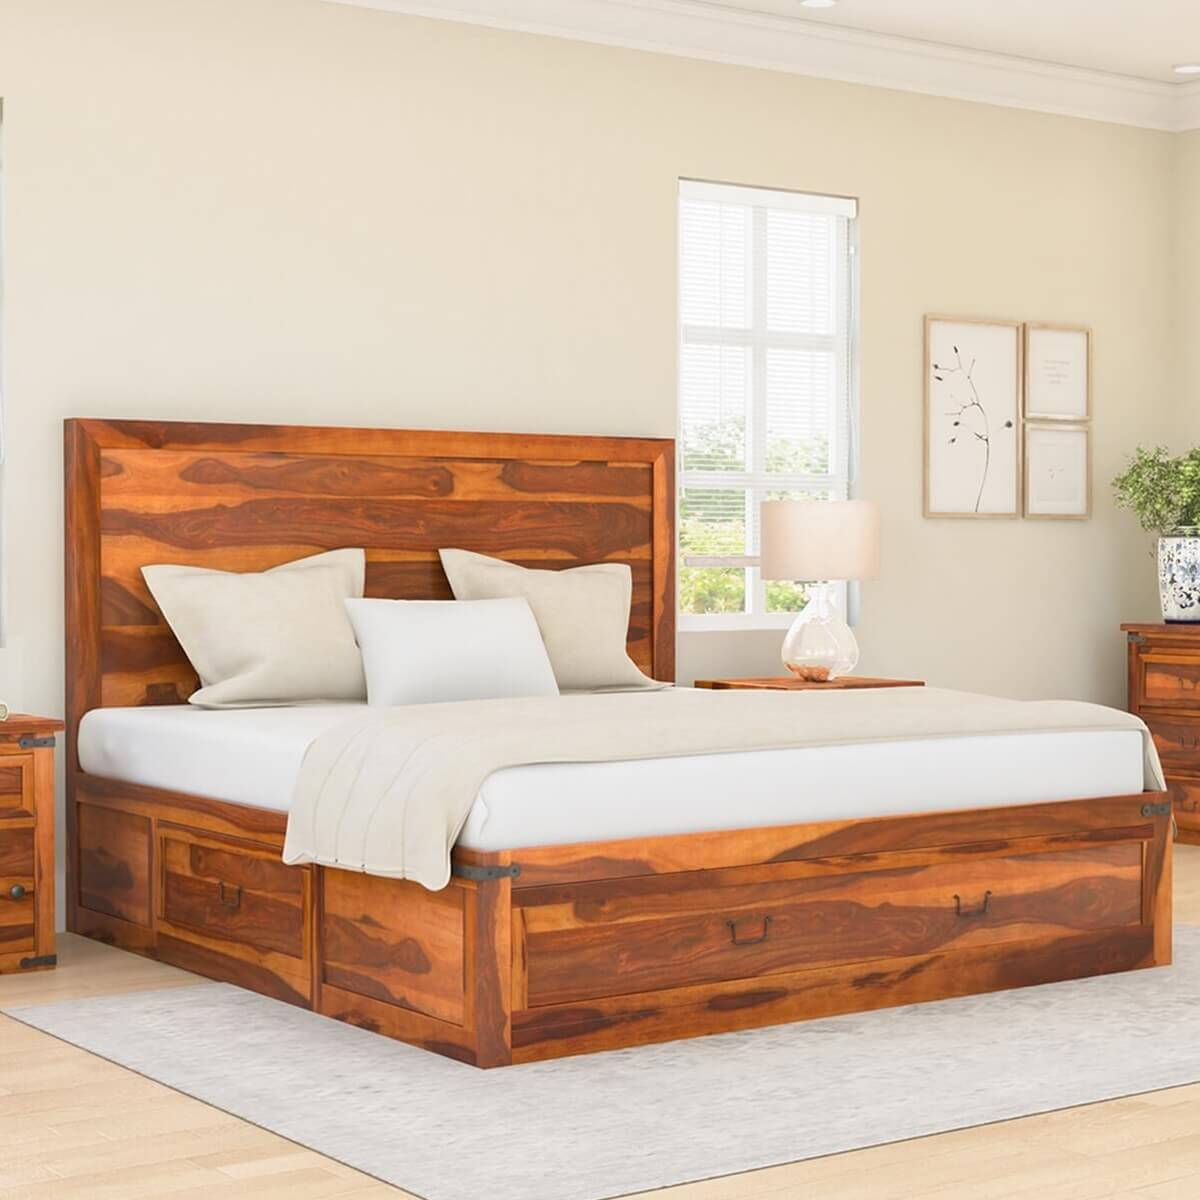 classic shaker california king size solid wood platform storage bed. Black Bedroom Furniture Sets. Home Design Ideas